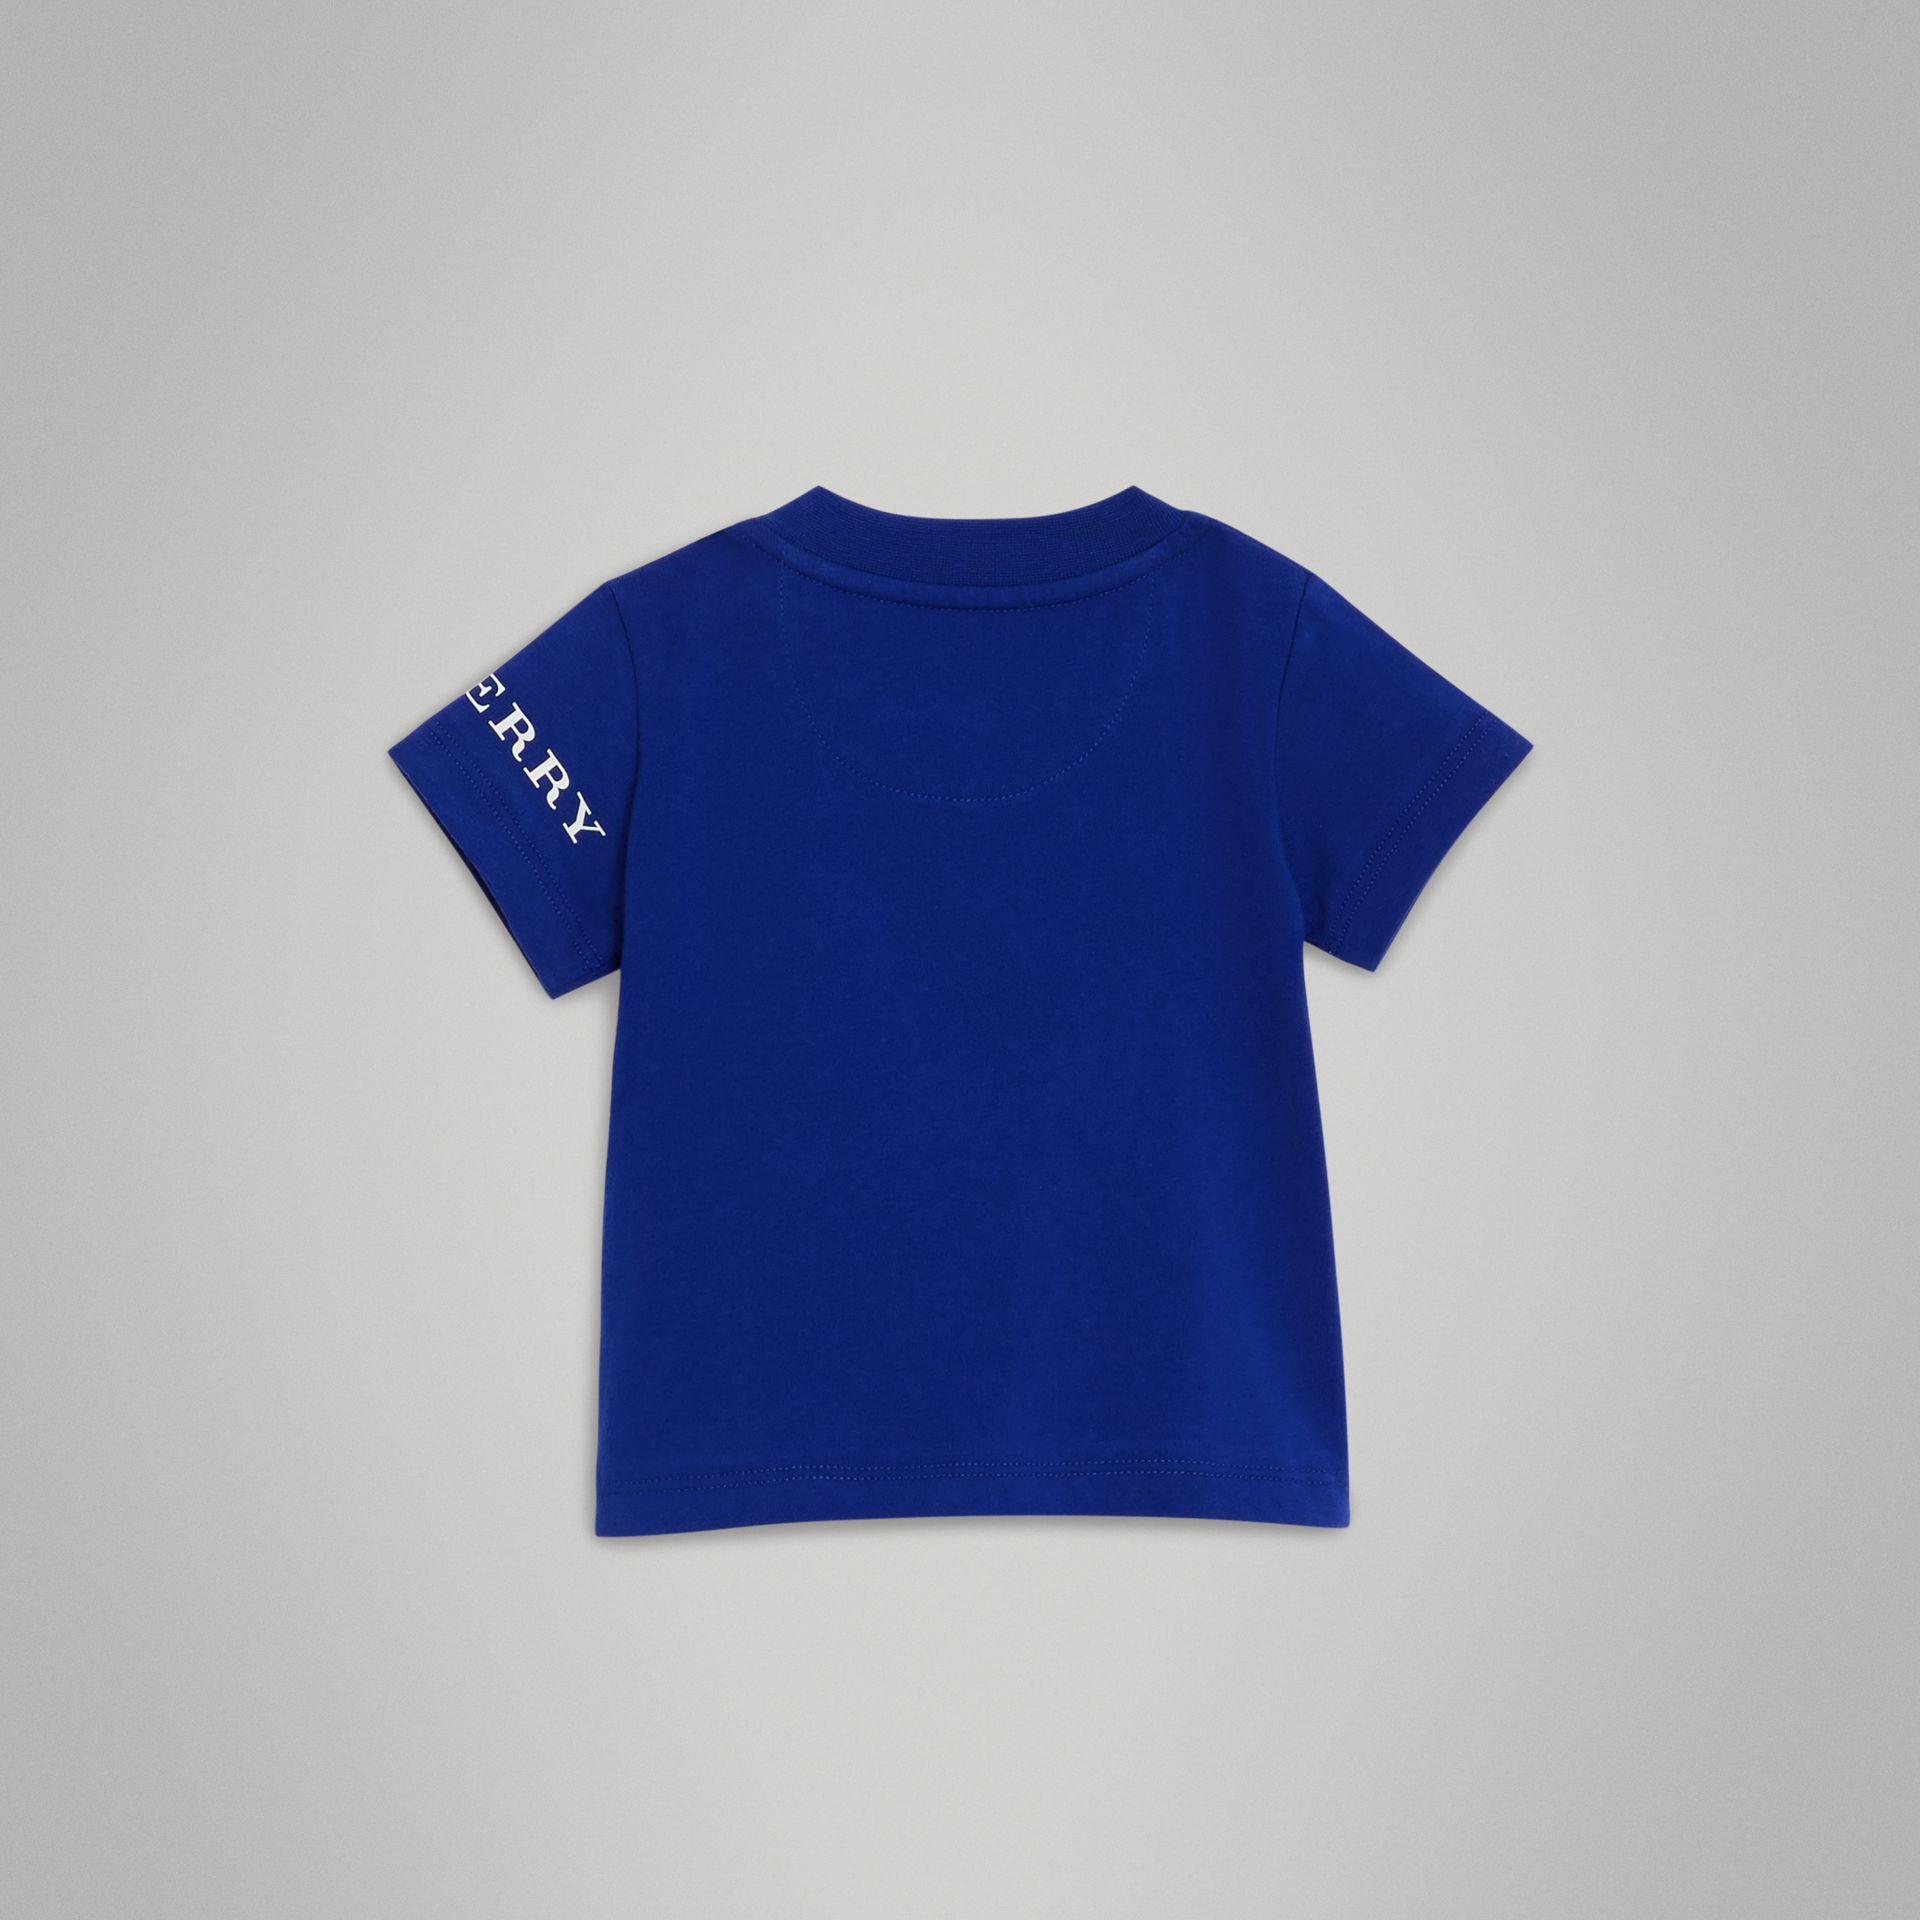 Logo Print Cotton T-shirt in Cobalt Blue - Children | Burberry United Kingdom - gallery image 3